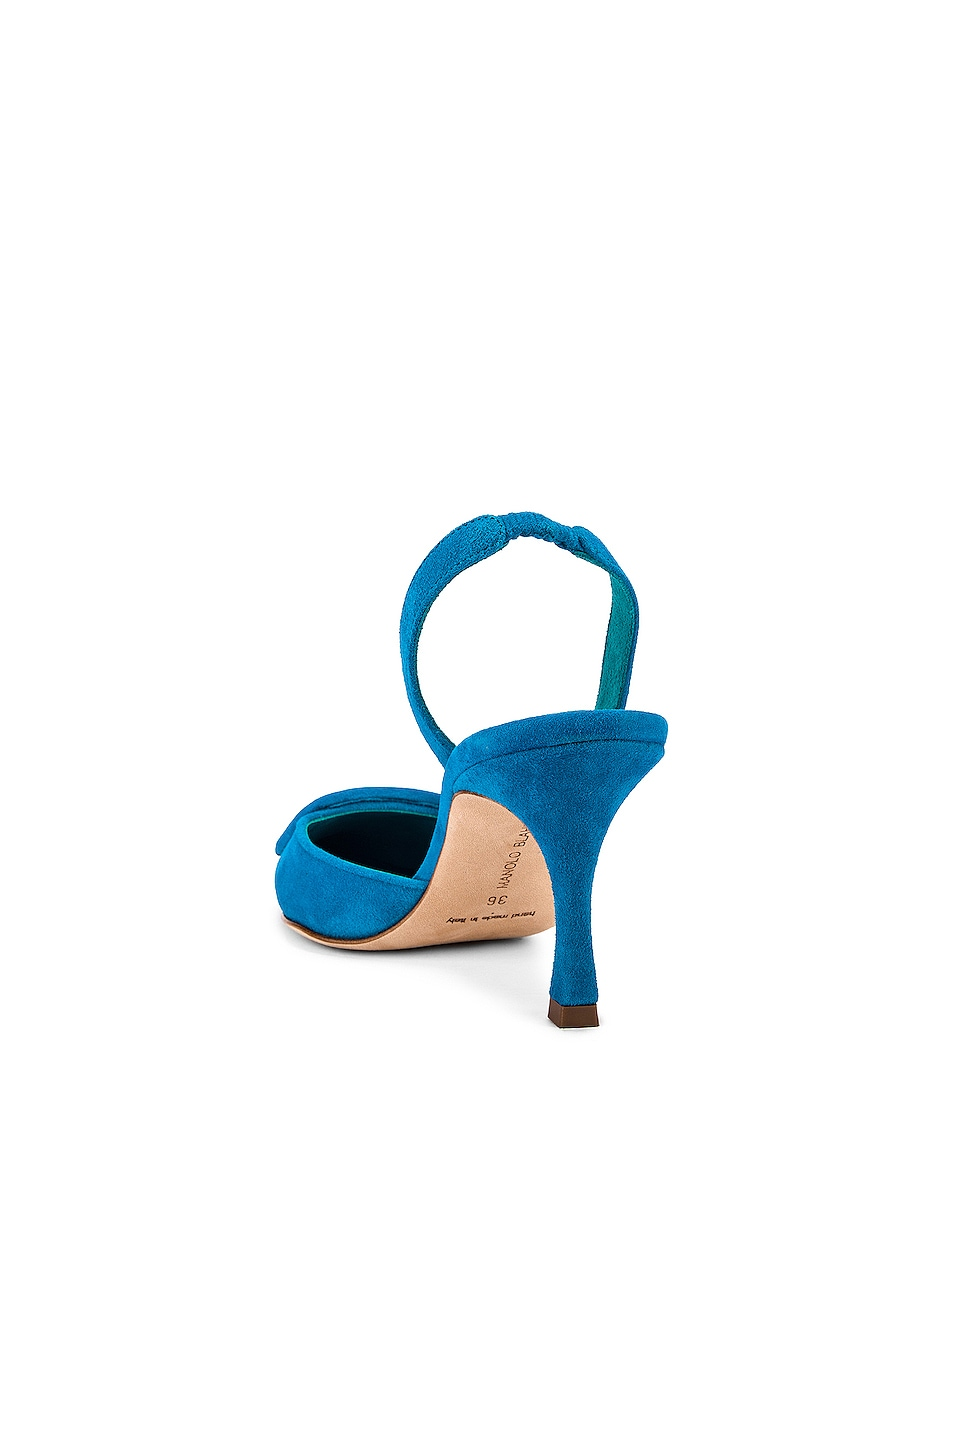 Image 3 of Manolo Blahnik Suede May 70 Slingback in Asiago Turquoise